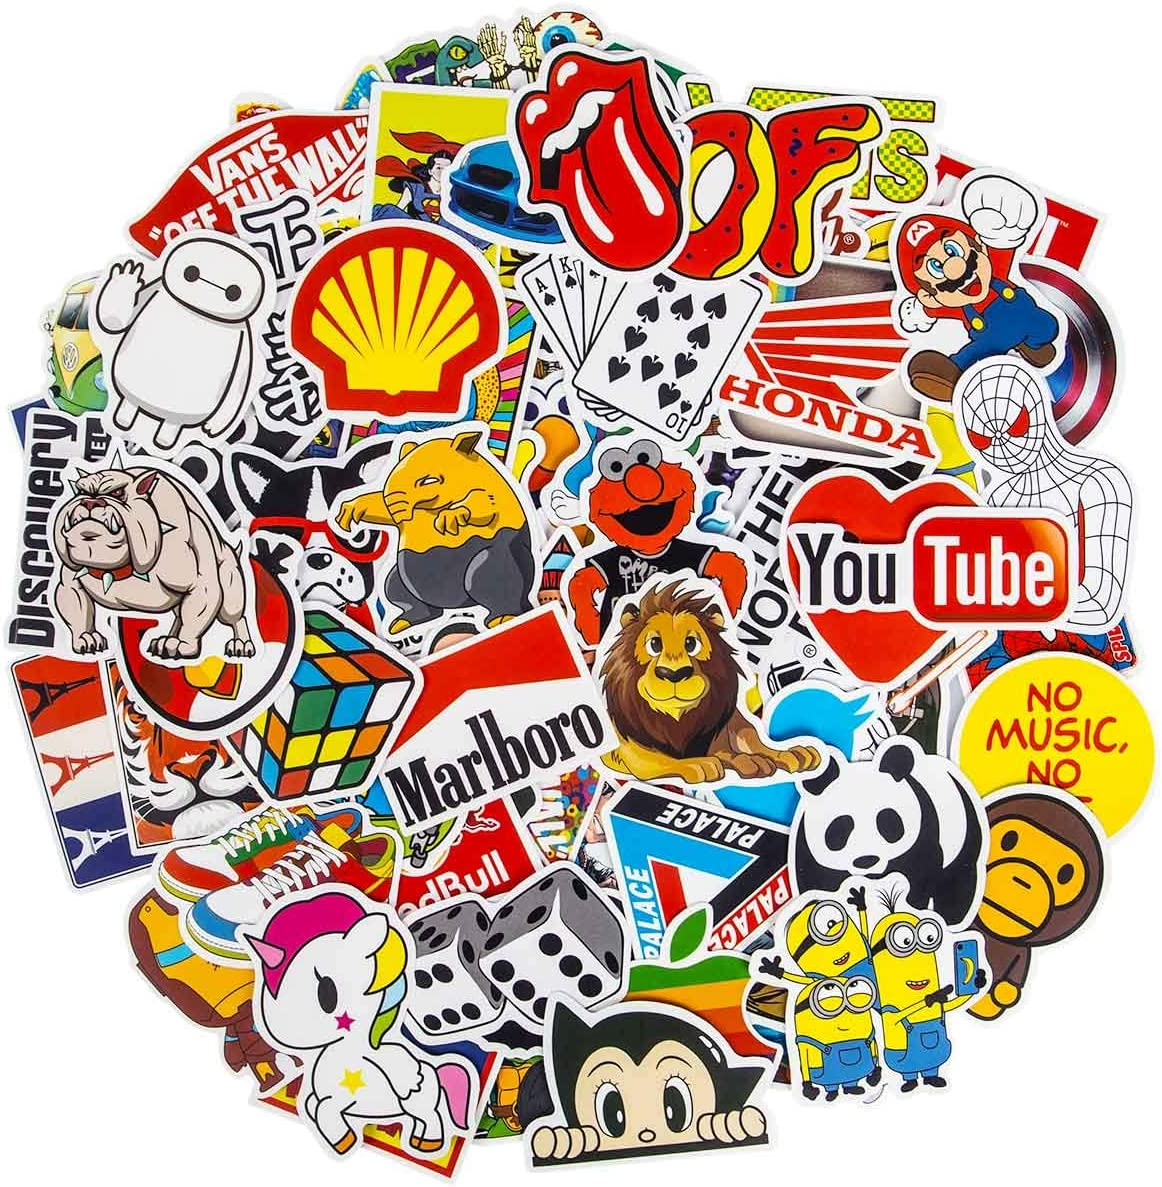 Brand Stickers, 100Pcs Cool Stickers Waterproof Vinyl Stickers for Water Bottles Skateboard Stickers for Teens Laptop Stickers Motorcycle, Bicycle, Graffiti Patches Decal